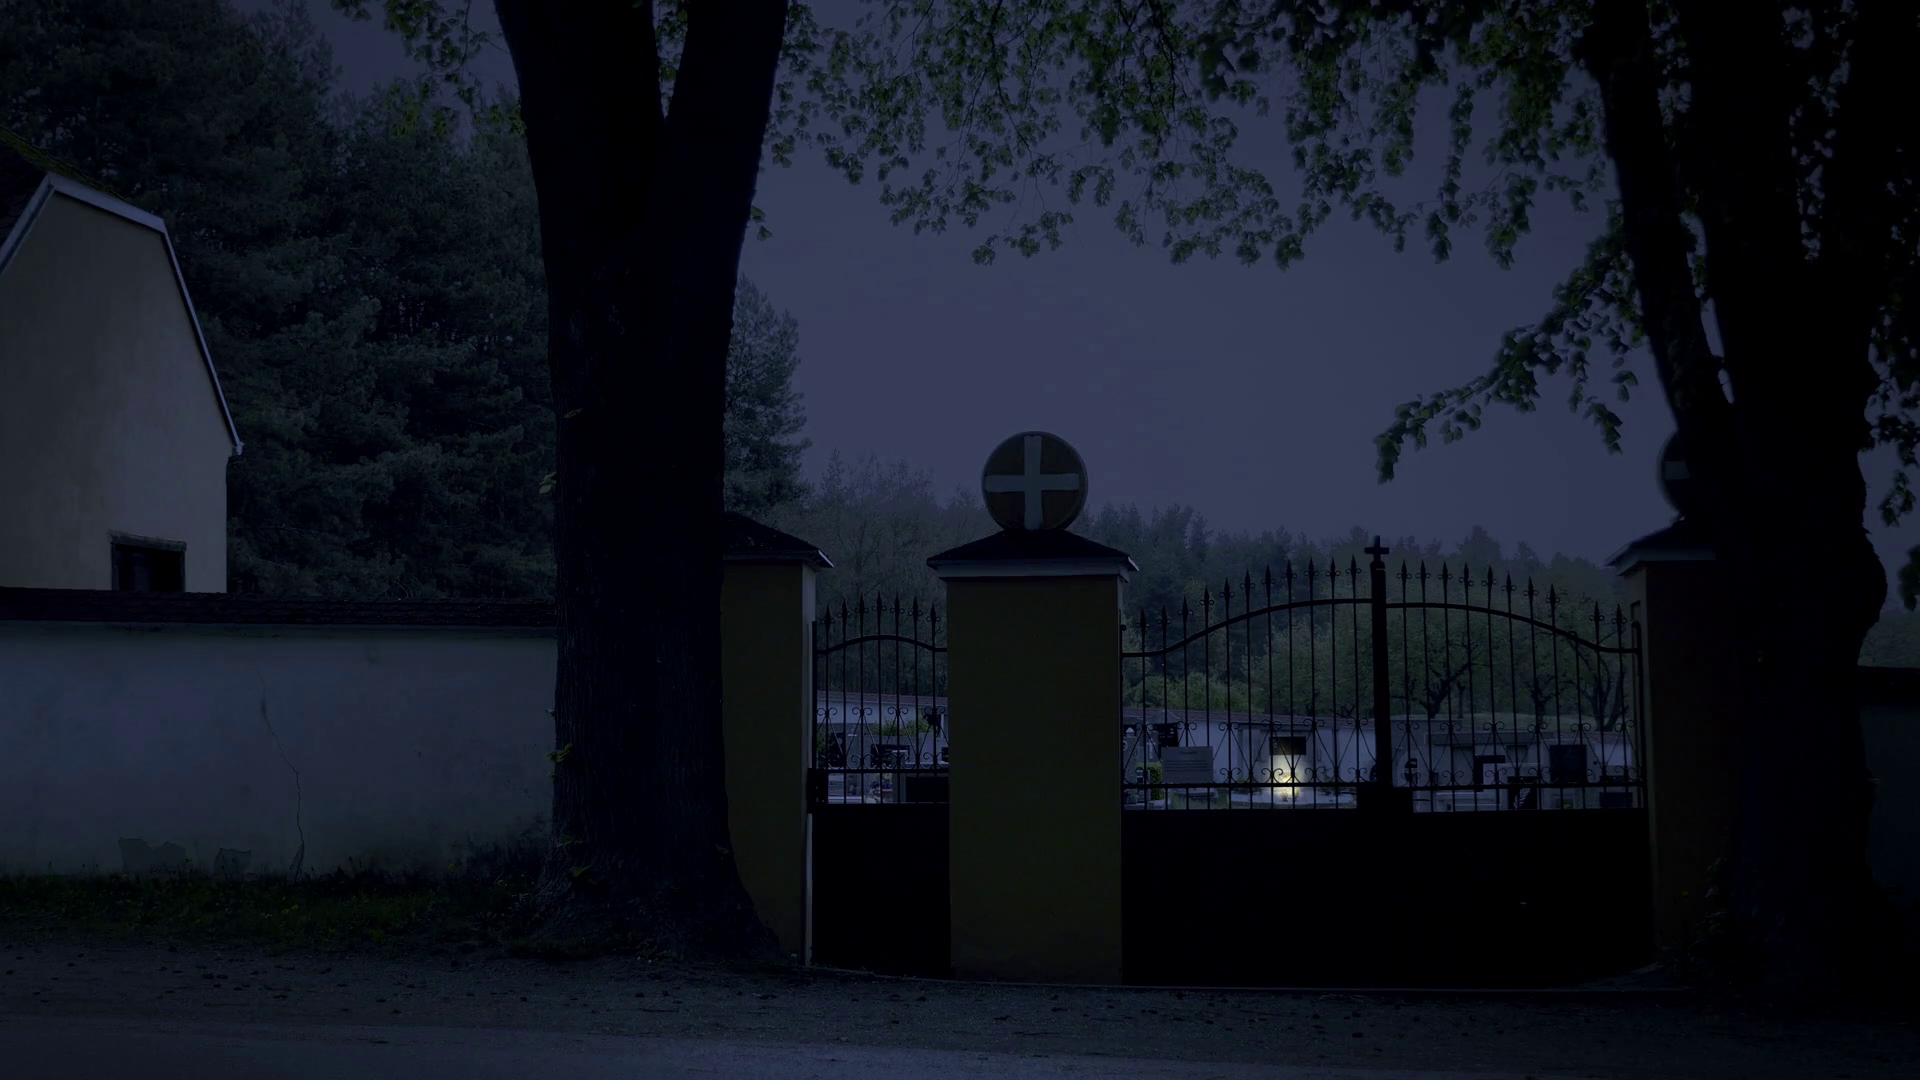 Scary cemetery at night. Invisible spirit closes and opens the gate ...